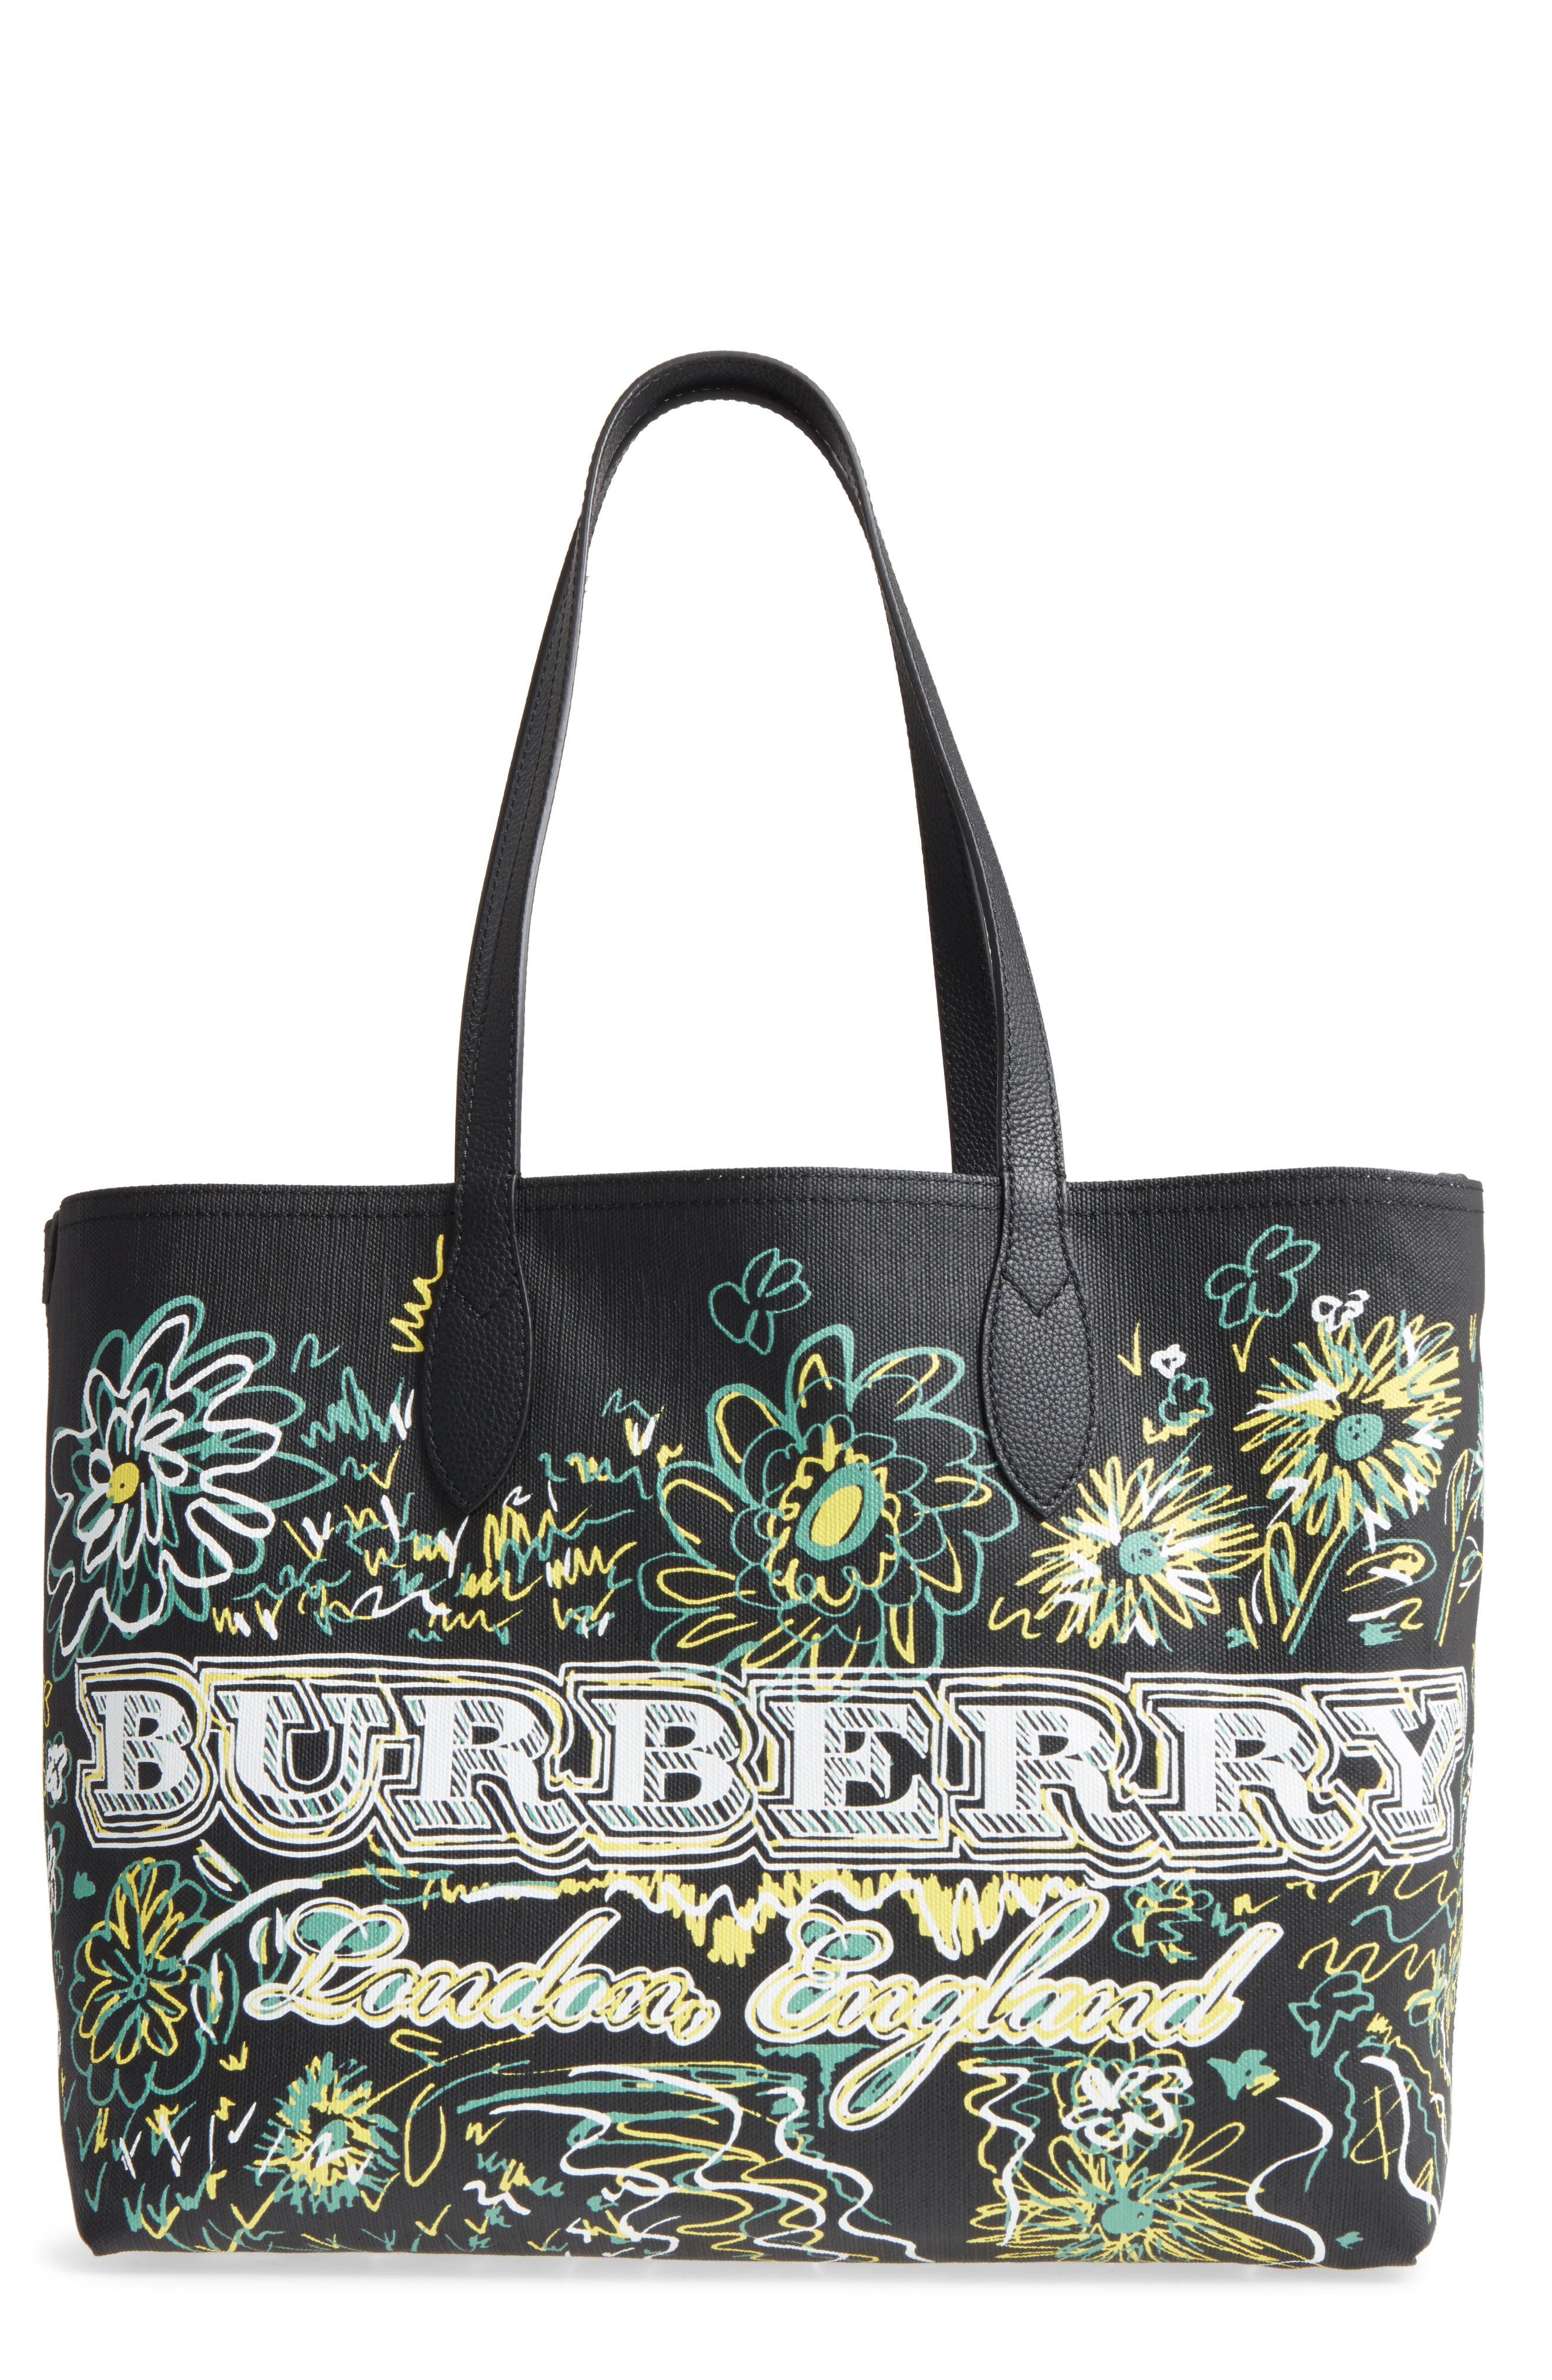 Main Image - Burberry Doodletote/Check Reversible Canvas Tote